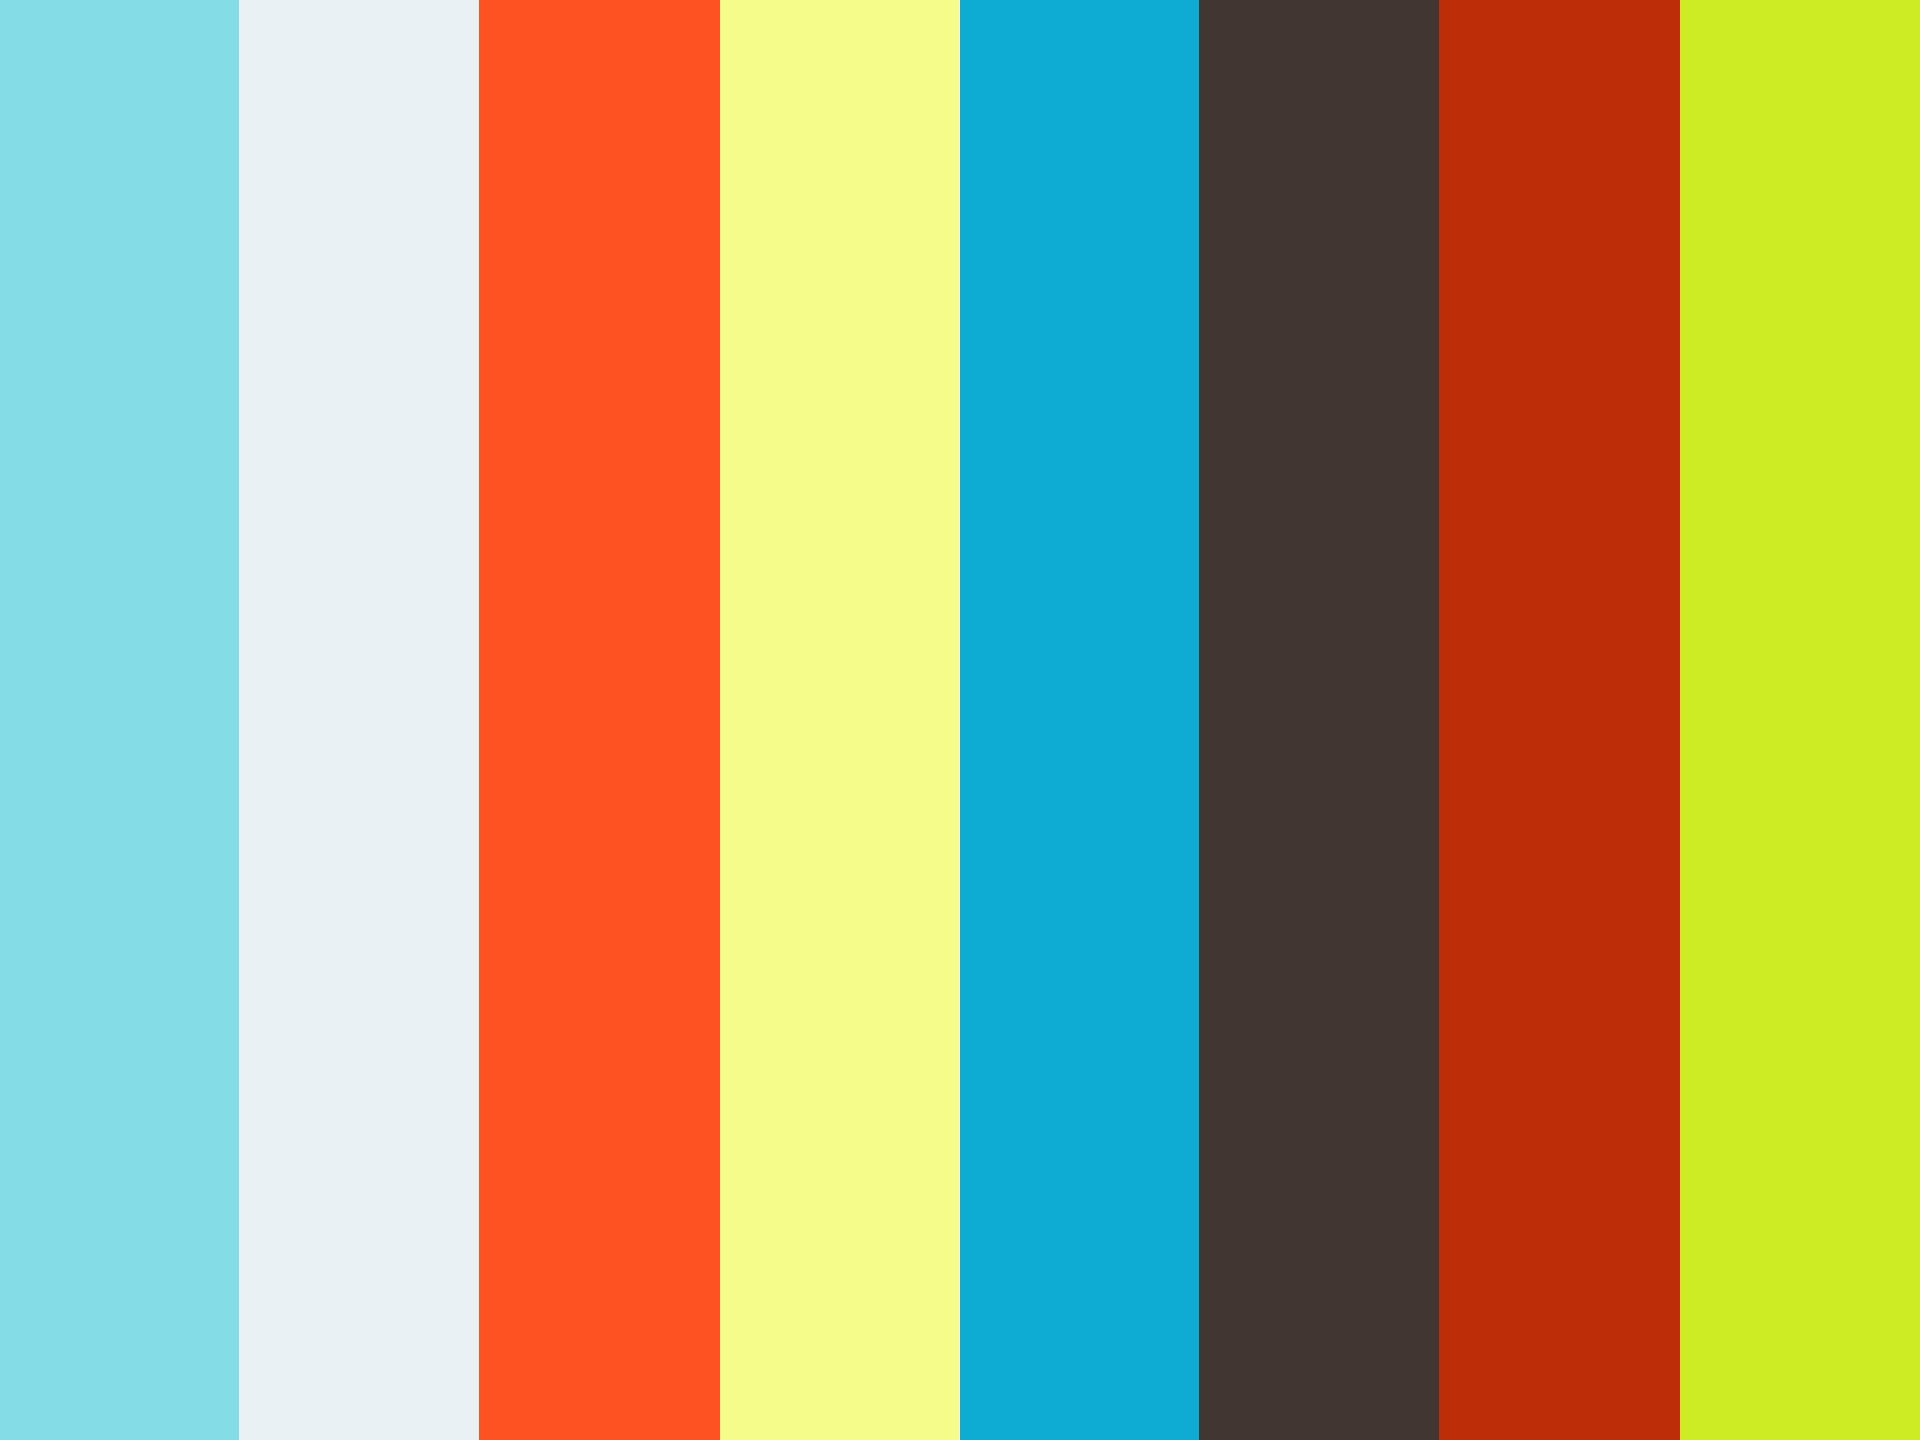 Multidisciplinary Therapy for Locally Advanced Rectal Cancer Core Subject 2010